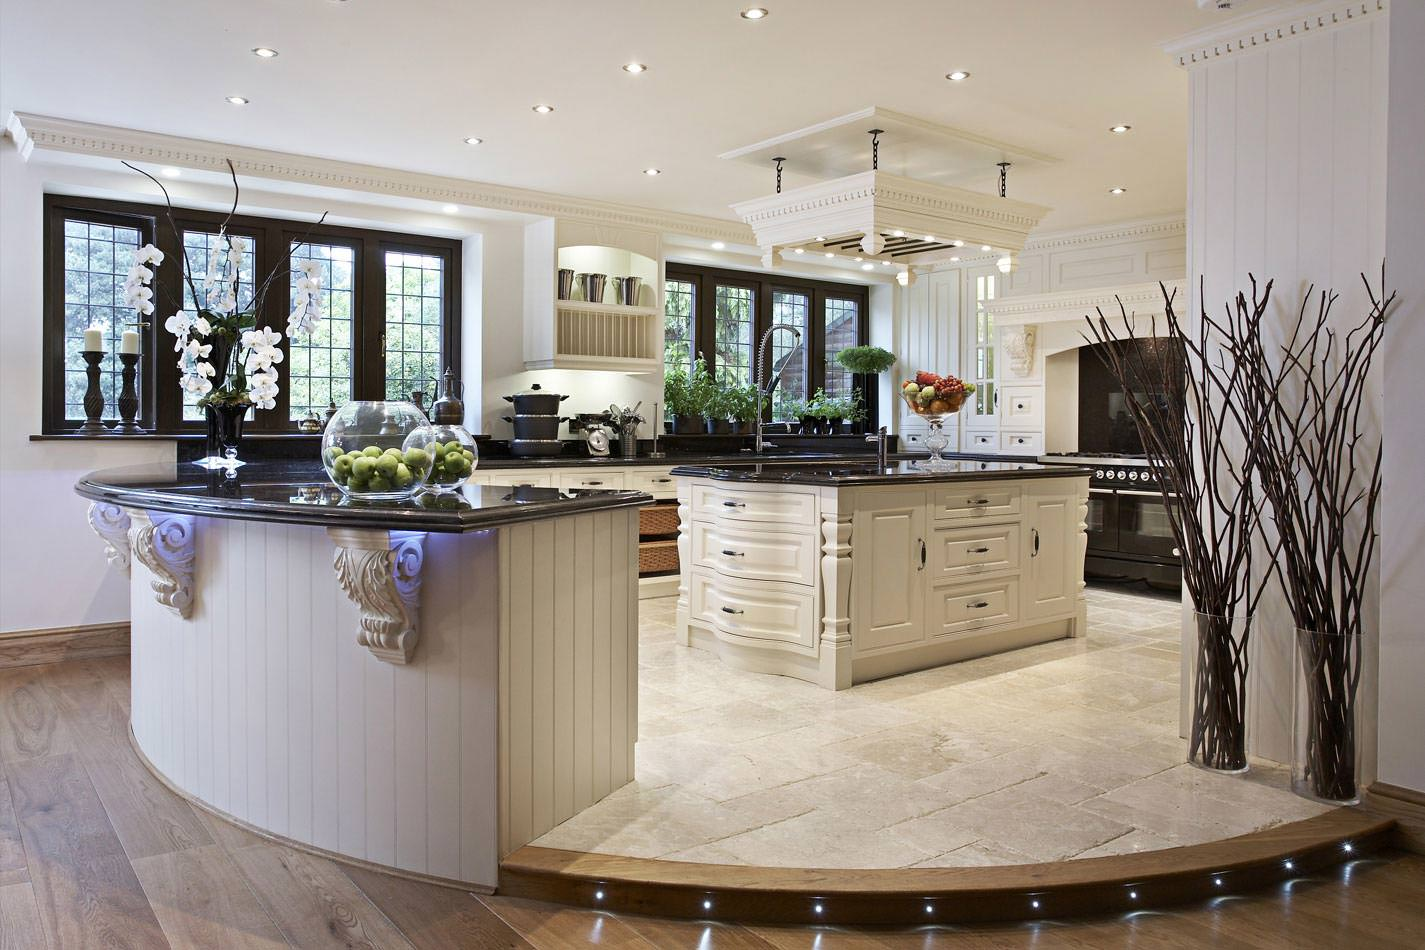 20 kitchen designs with two islands or more for More kitchen designs